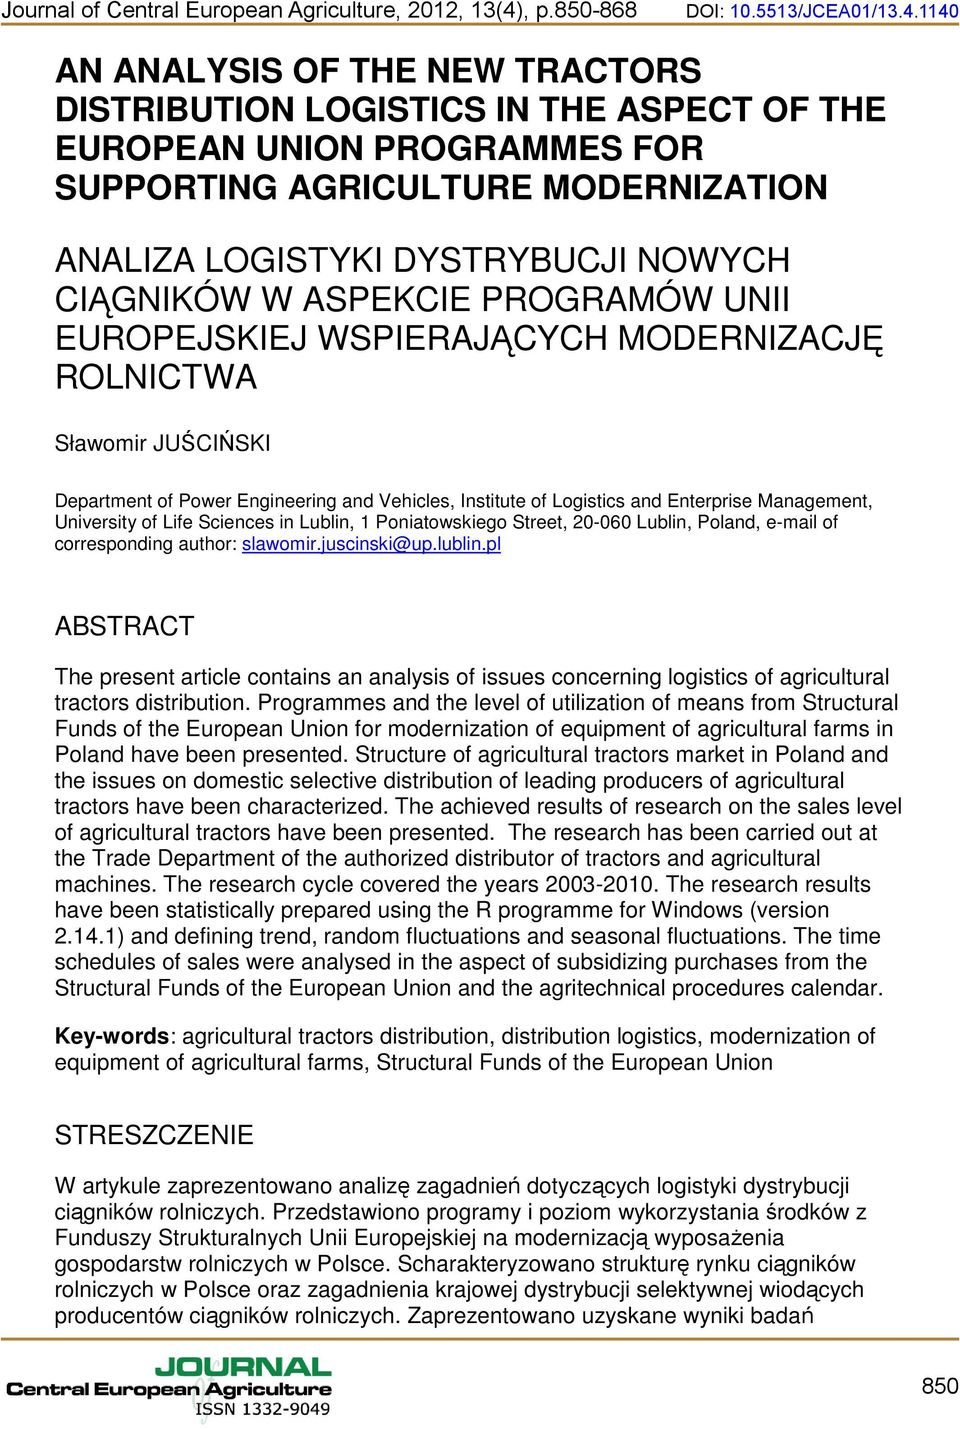 1140 AN ANALYSIS OF THE NEW TRACTORS DISTRIBUTION LOGISTICS IN THE ASPECT OF THE EUROPEAN UNION PROGRAMMES FOR SUPPORTING AGRICULTURE MODERNIZATION ANALIZA LOGISTYKI DYSTRYBUCJI NOWYCH CIĄGNIKÓW W